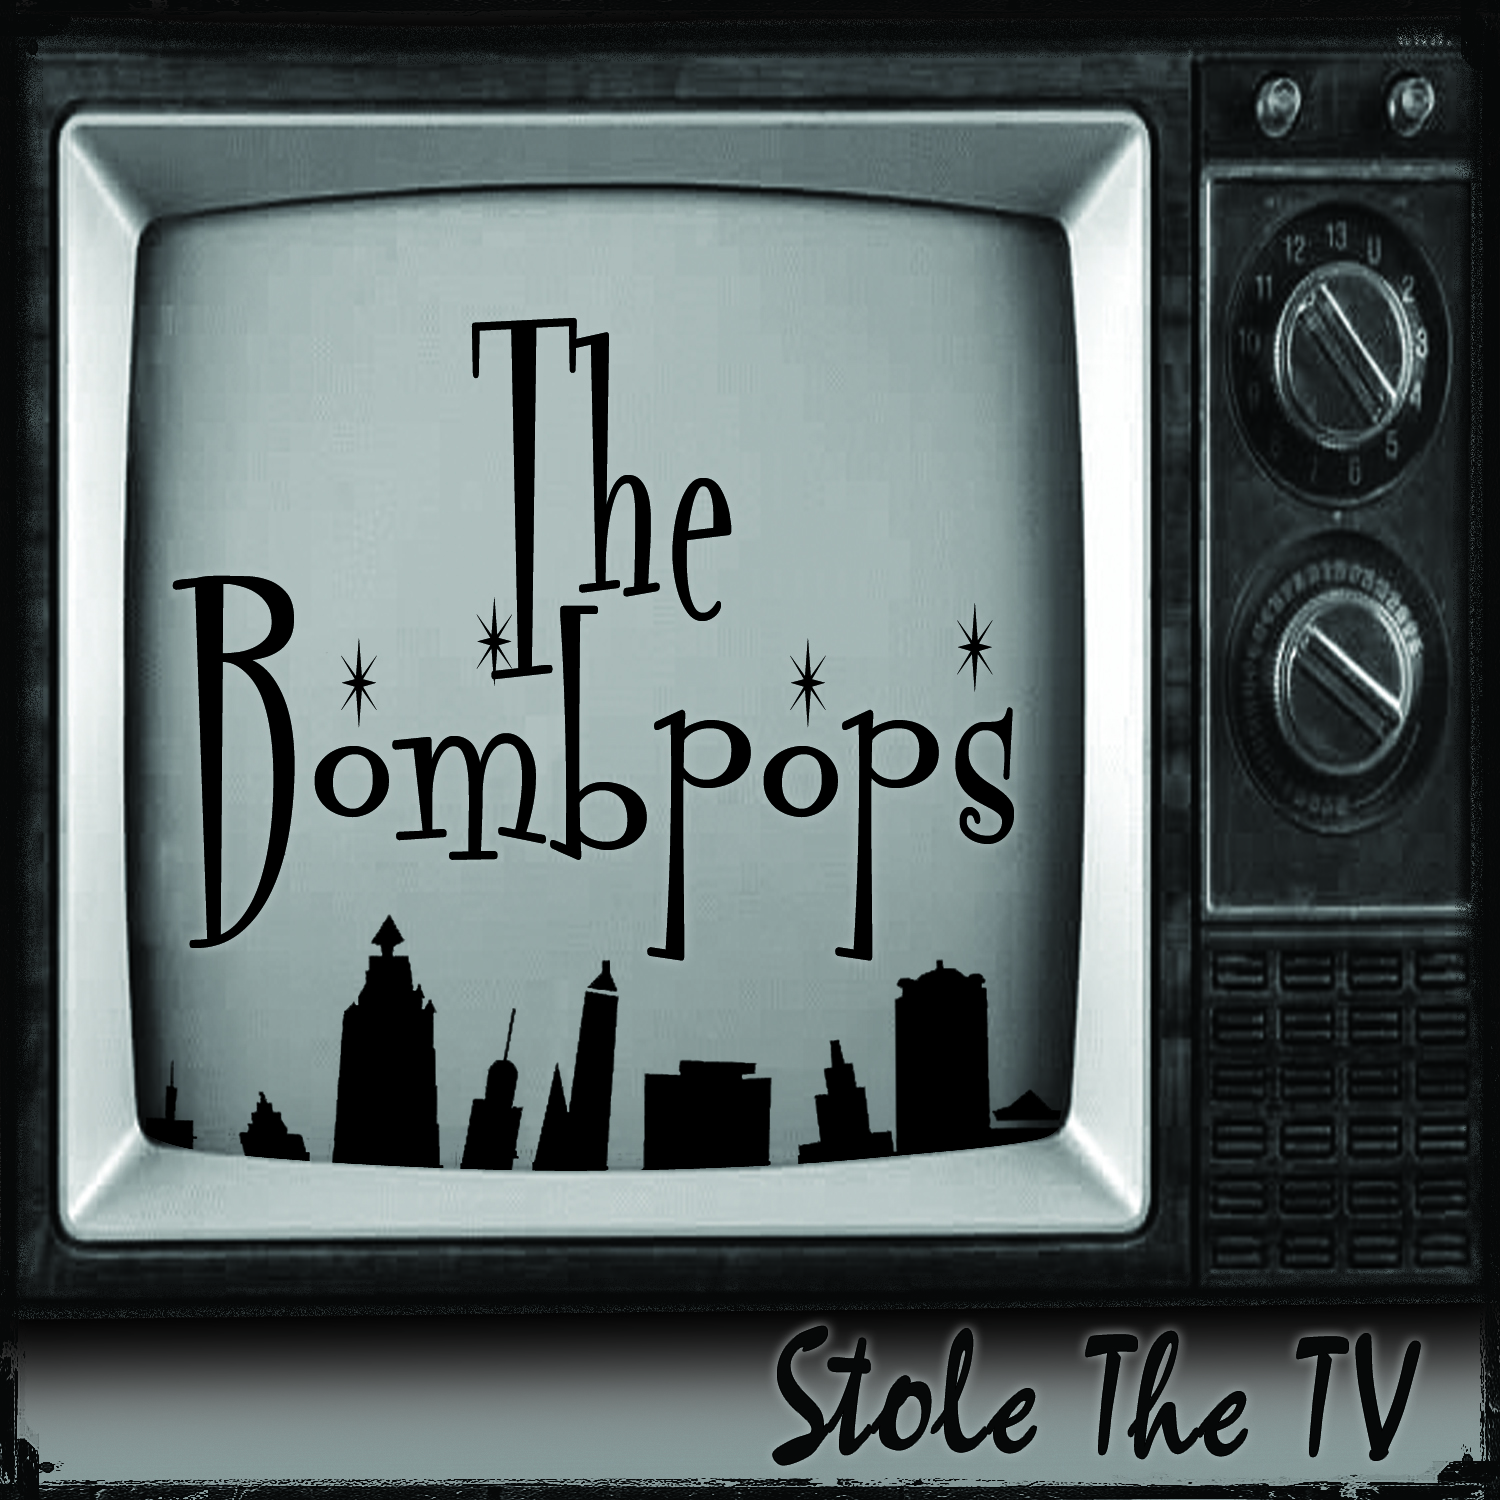 f15da926f The second EP from The Bombpops, this time recorded at Doubletime Studios  (Blink 182, RFTC, etc.) in their hometown of San Diego.